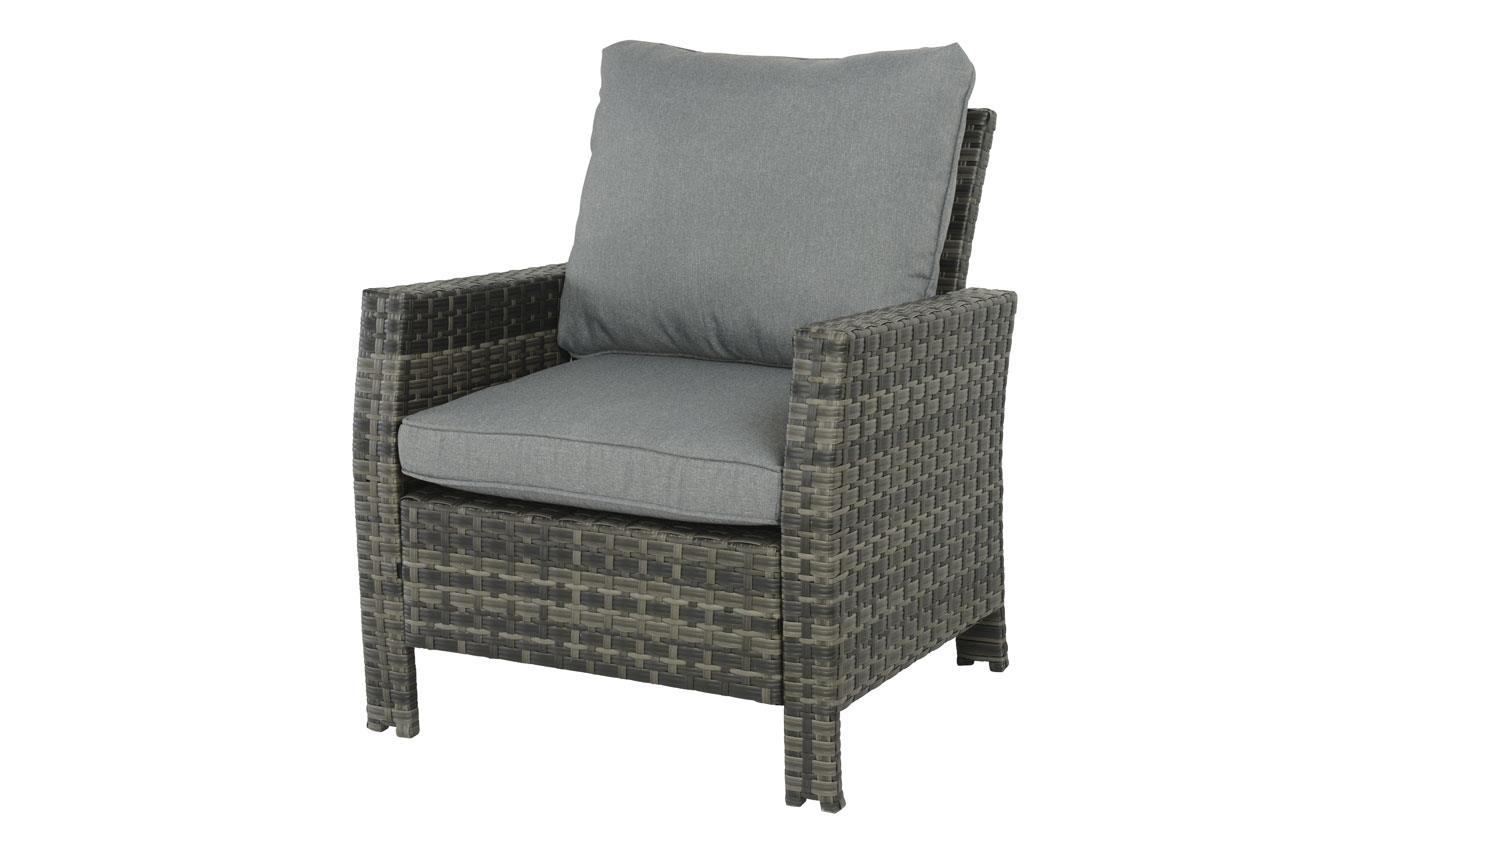 Sessel madison gartensessel mit polyrattan in grau braun for Instore mobel martin